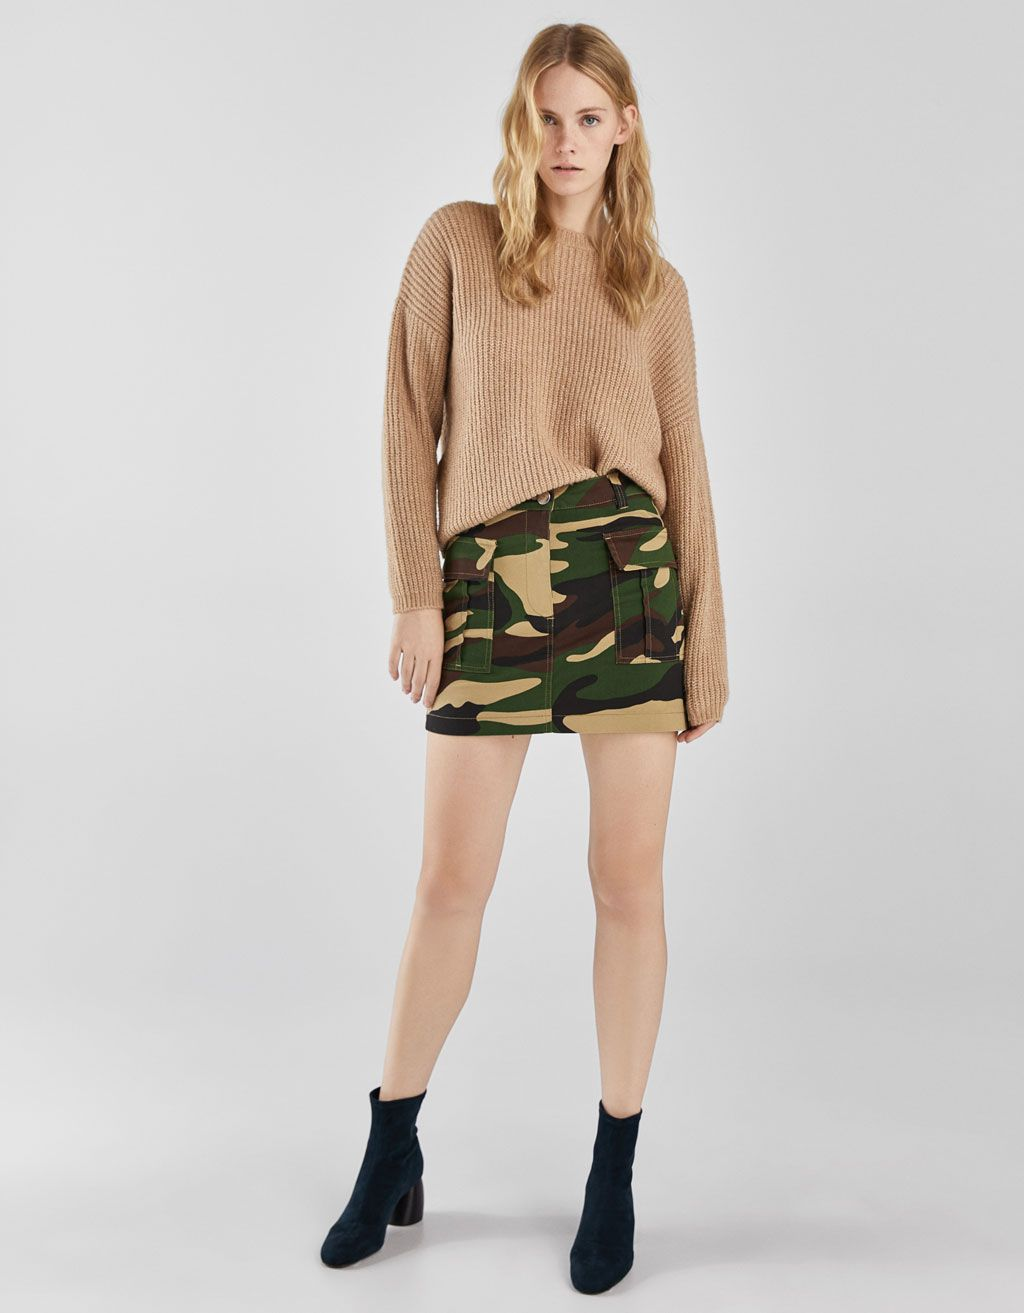 a524ee47a2436e Skirt with camouflage print and pockets - Bershka #newin #trend #trendy  #cool #fashion #aw18 #outfit #ideas #inspiration #look #camouflage #army  #cargo ...